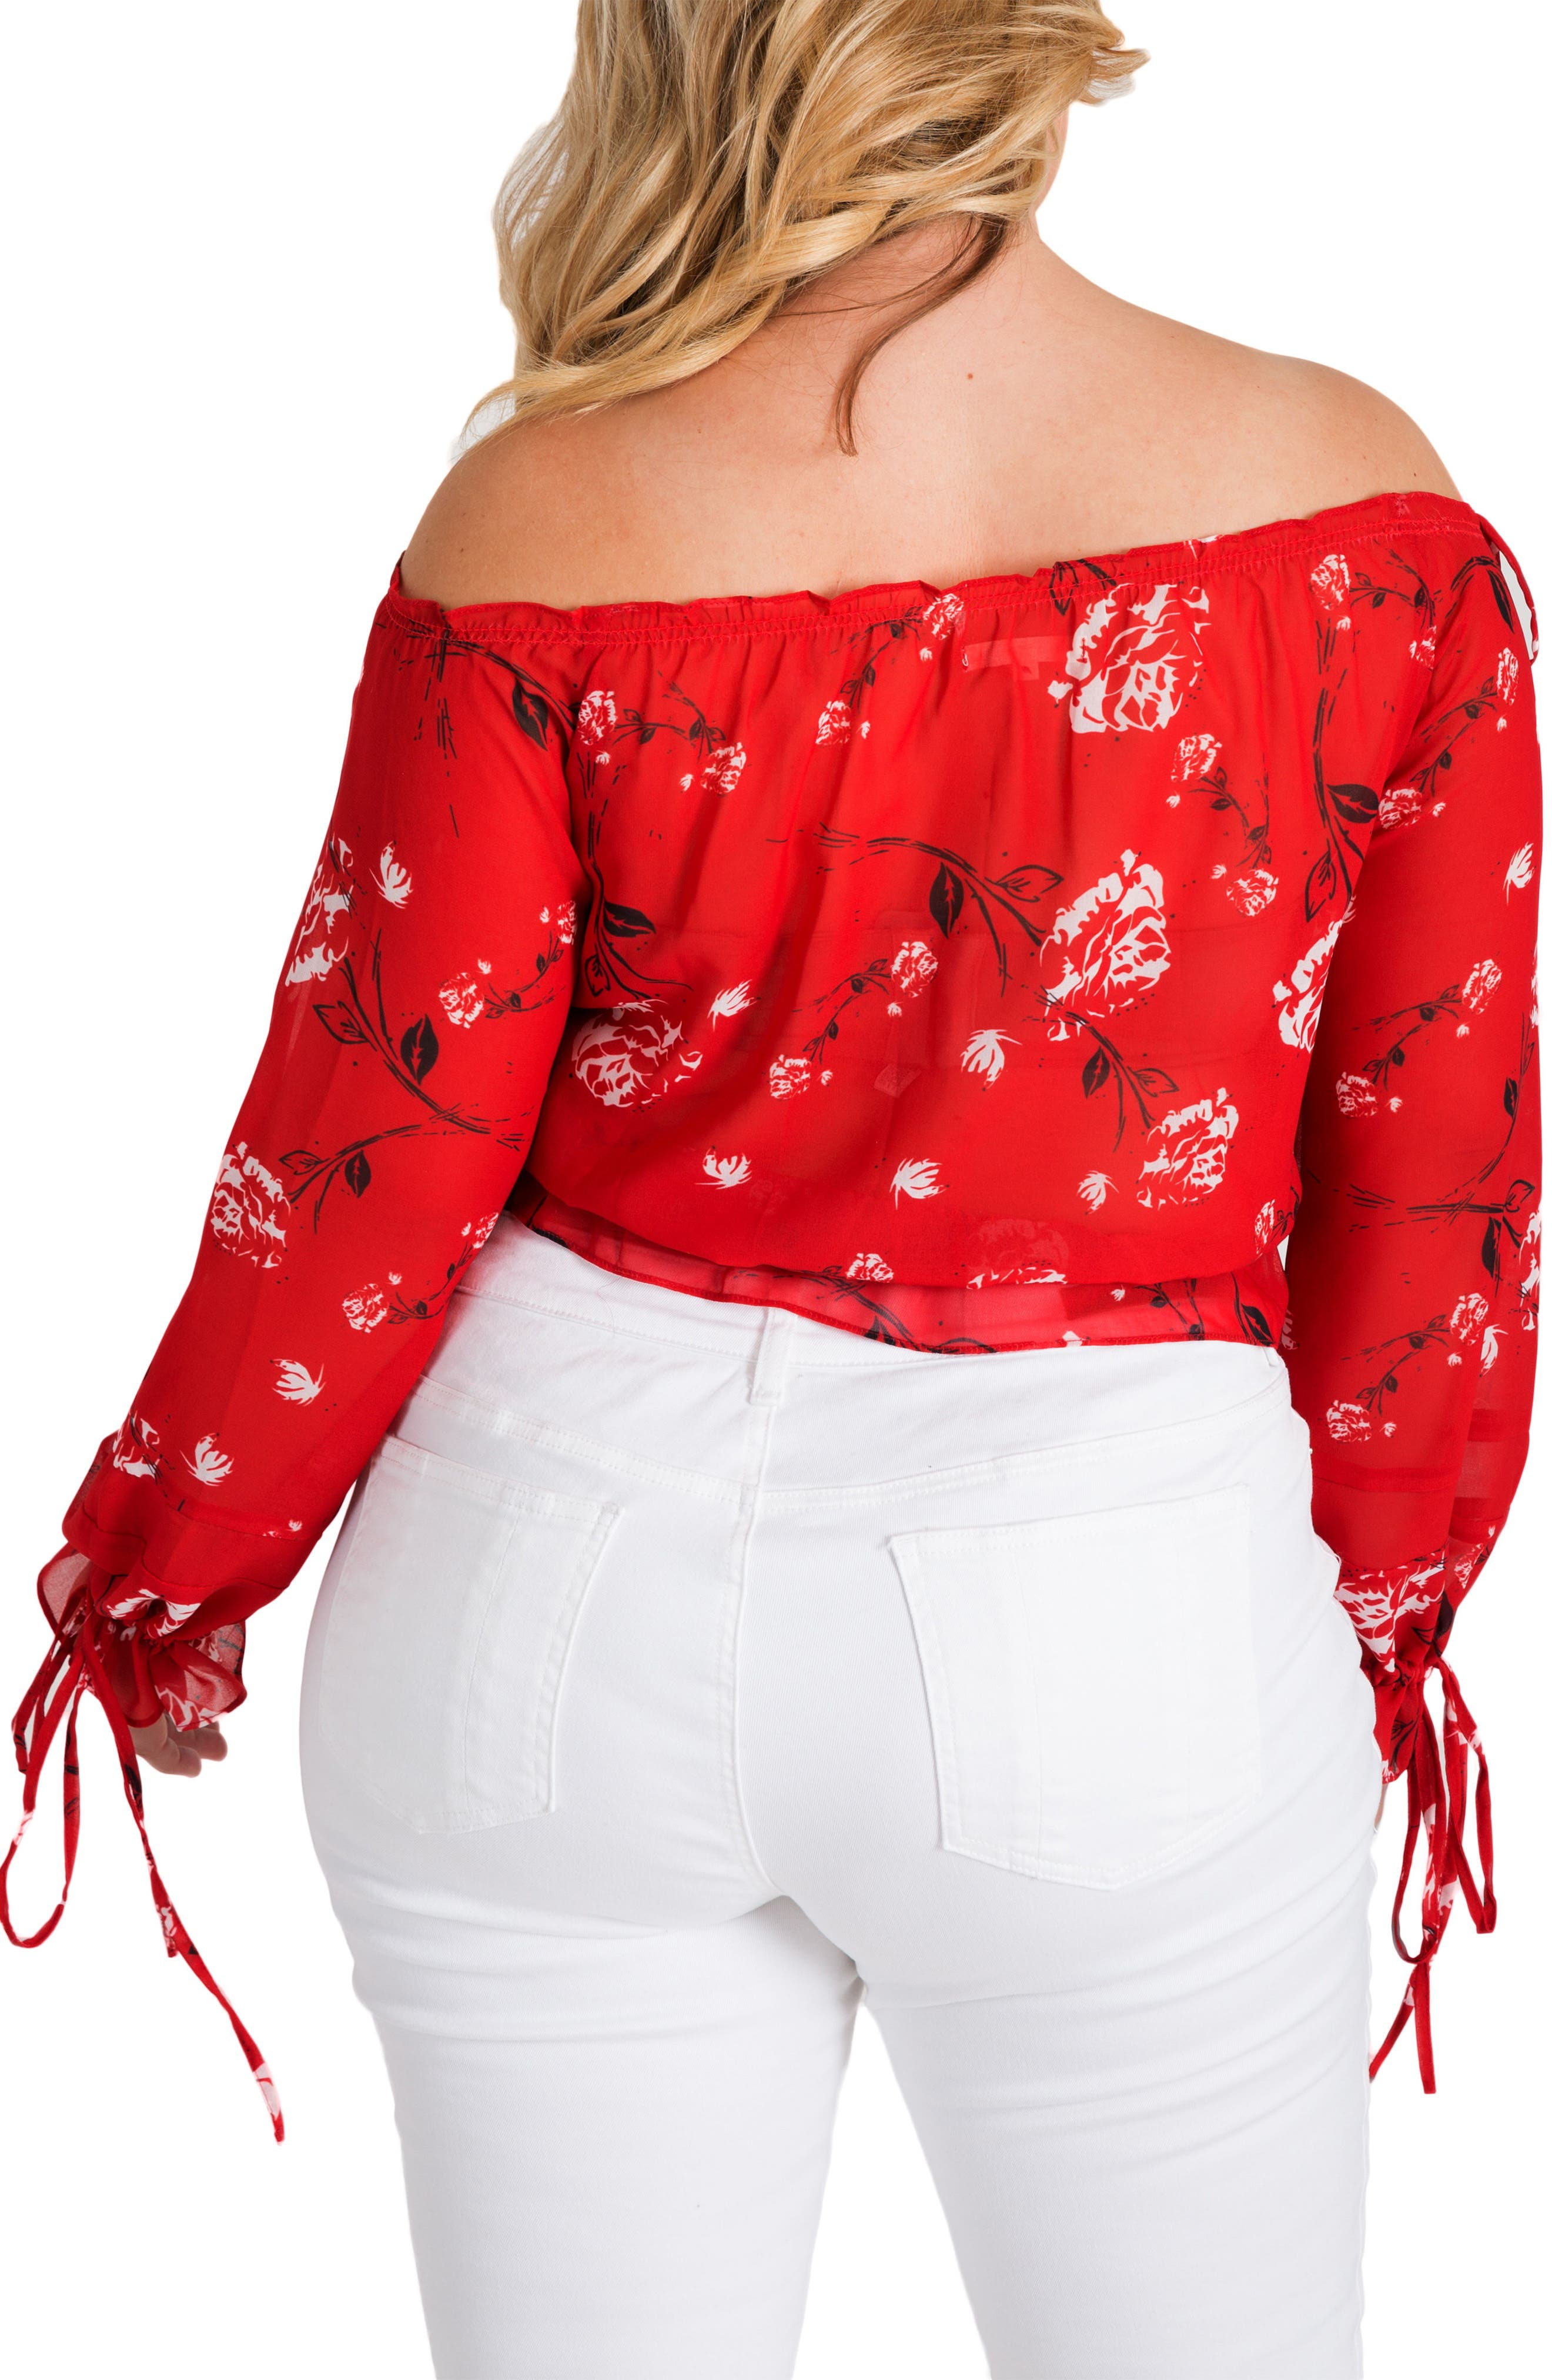 Marina Off the Shoulder Tie Sleeve Top,                             Alternate thumbnail 2, color,                             Red Tulip Print